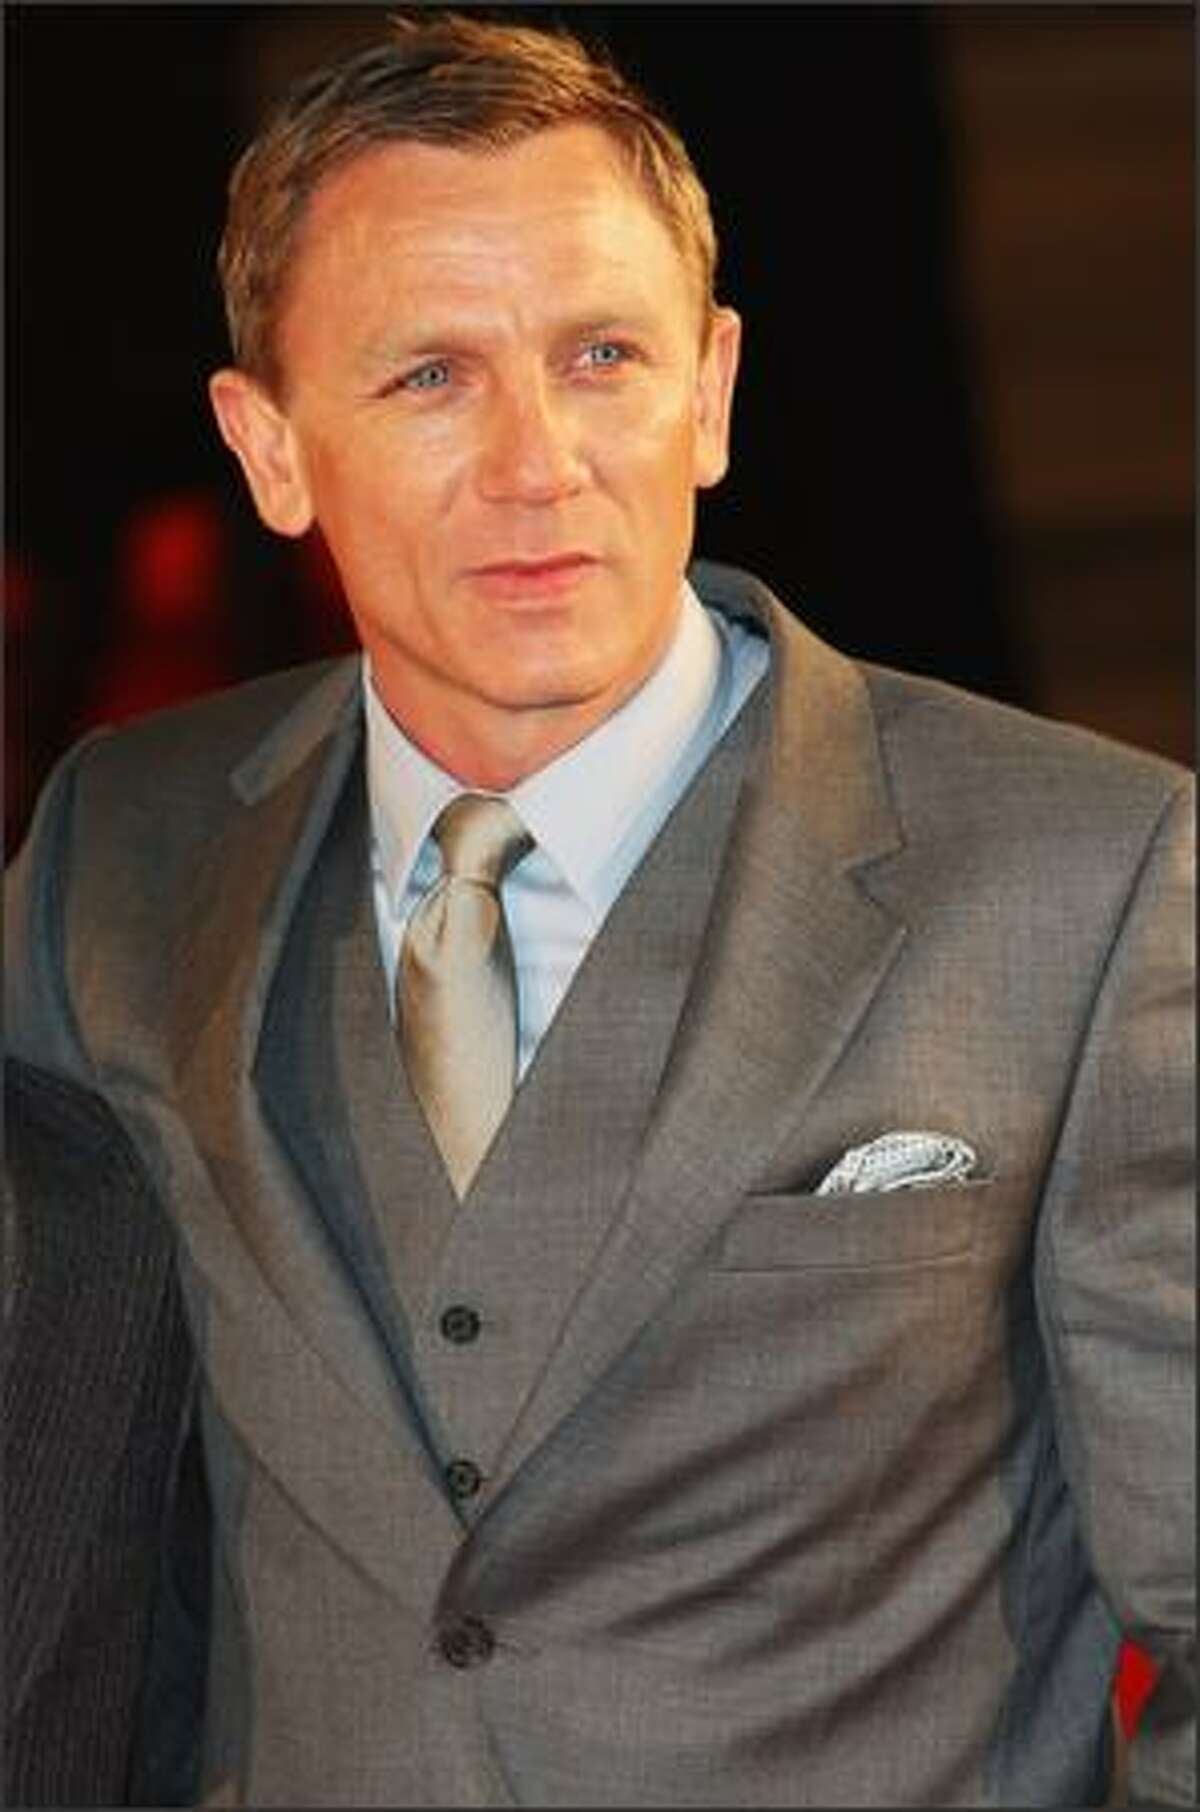 Actor Daniel Craig arrives at the European Premiere of 'Defiance' at the Odeon West End cinema, Leicester Square on Tuesday in London, England.